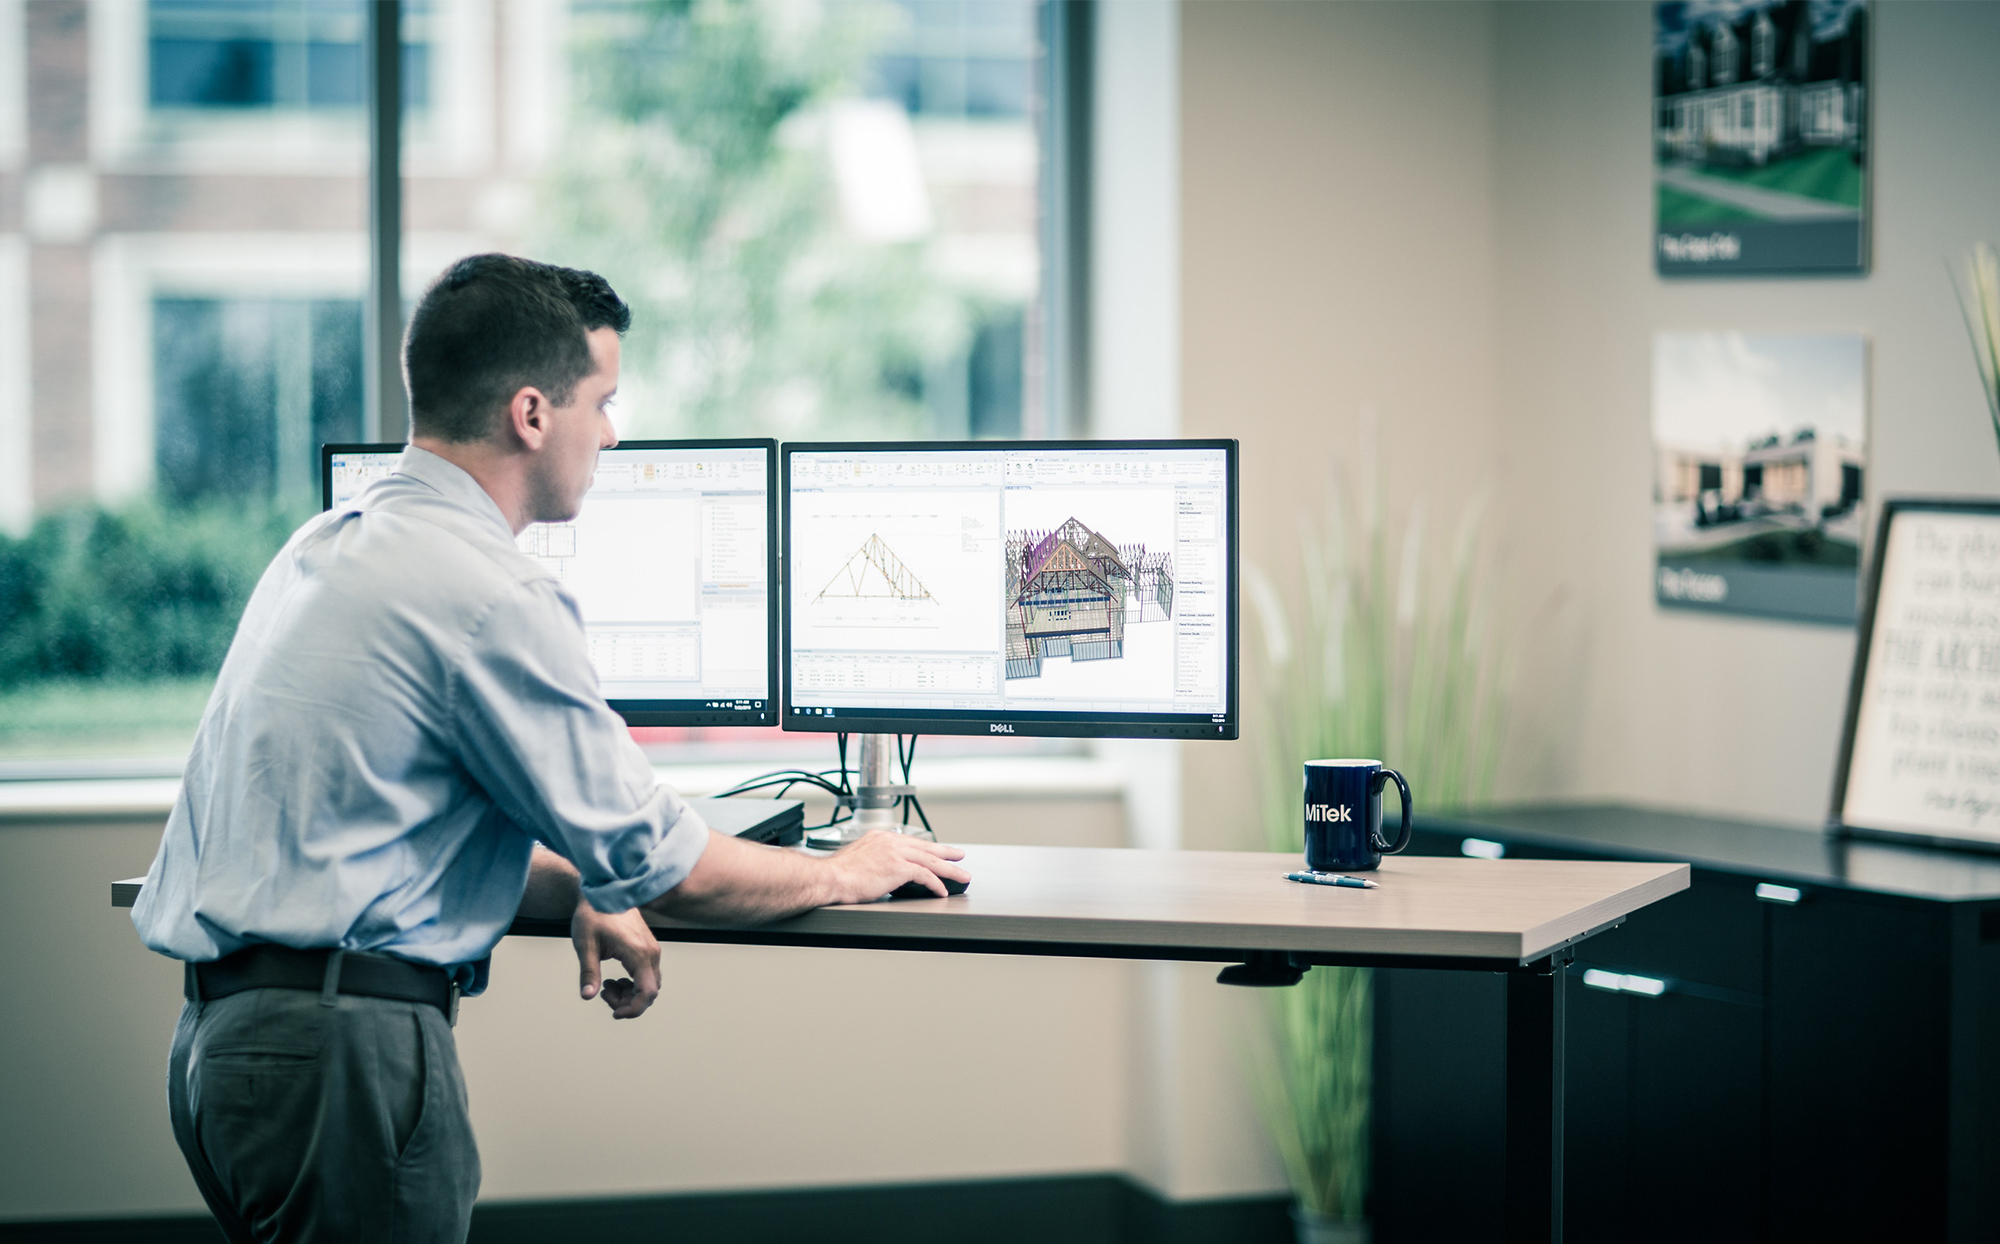 Solutions and Services Offered by MiTek - Man standing at desk working at a computer working on a 3D model of a house